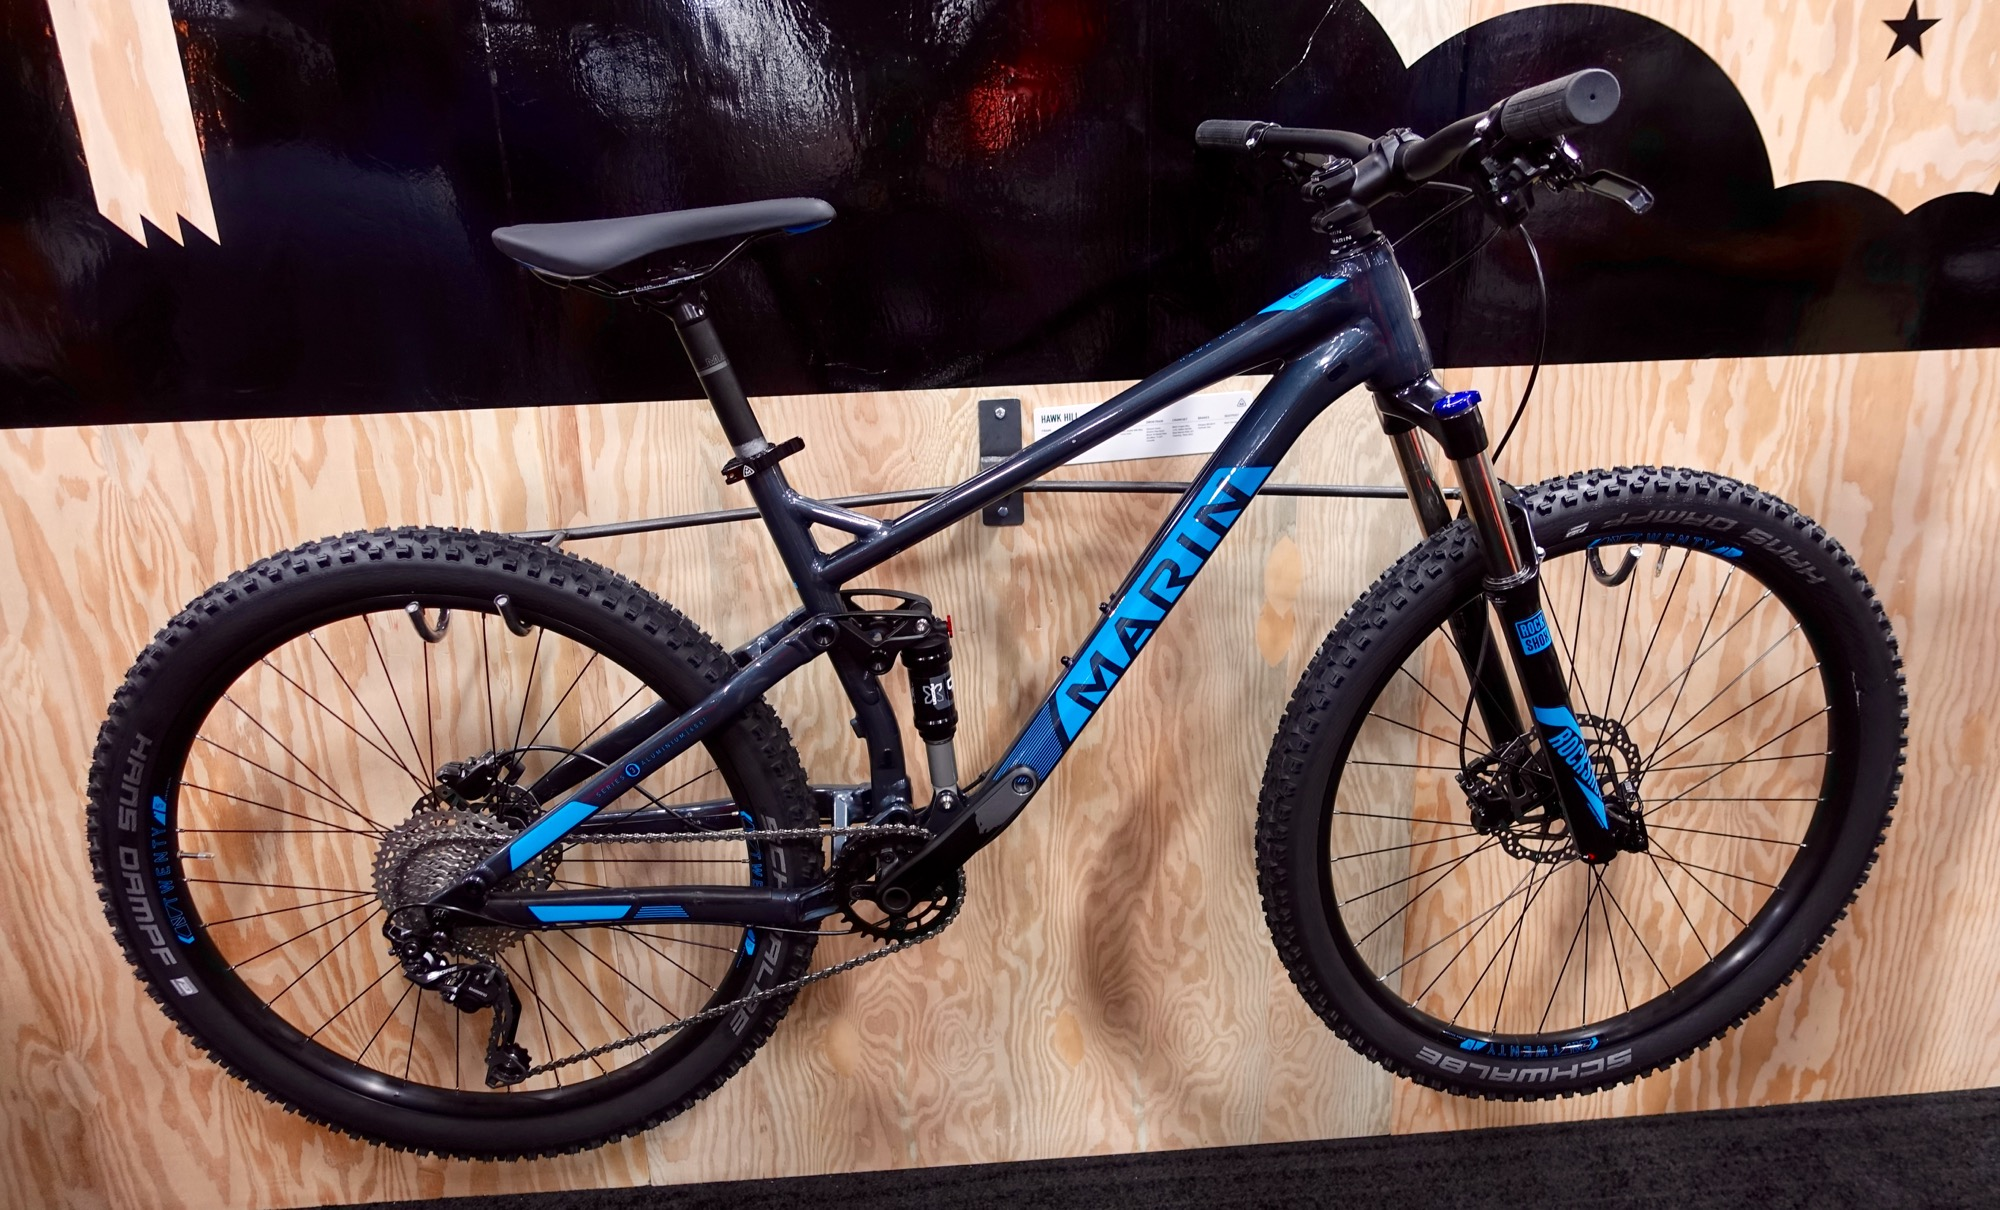 Can You Make A Quality FS MTB For $1,500? Marin Thinks So